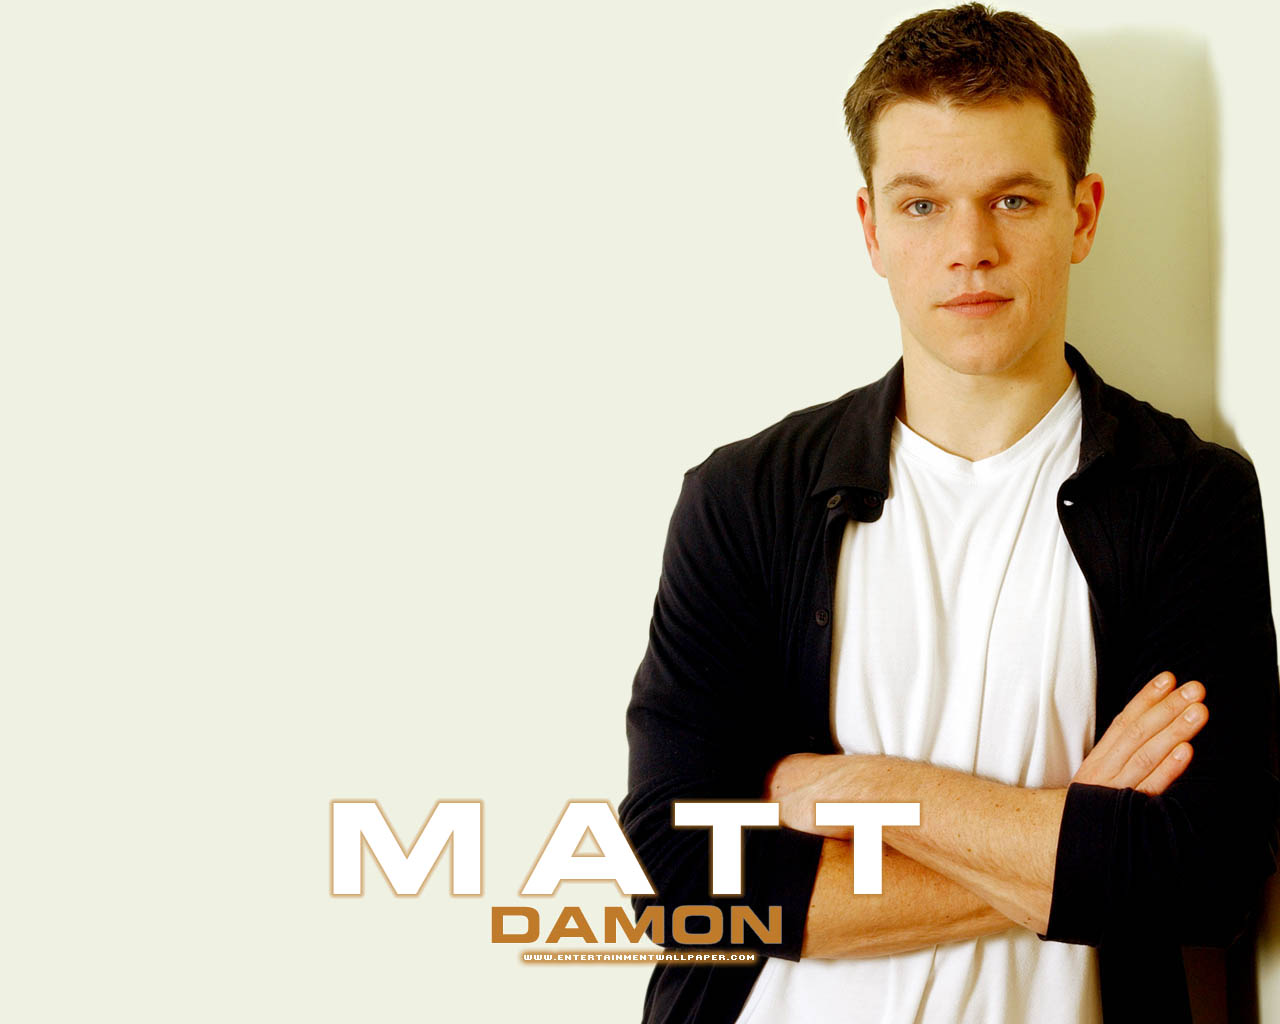 http://images.fanpop.com/images/image_uploads/Matt-Damon--matt-damon-646857_1280_1024.jpg